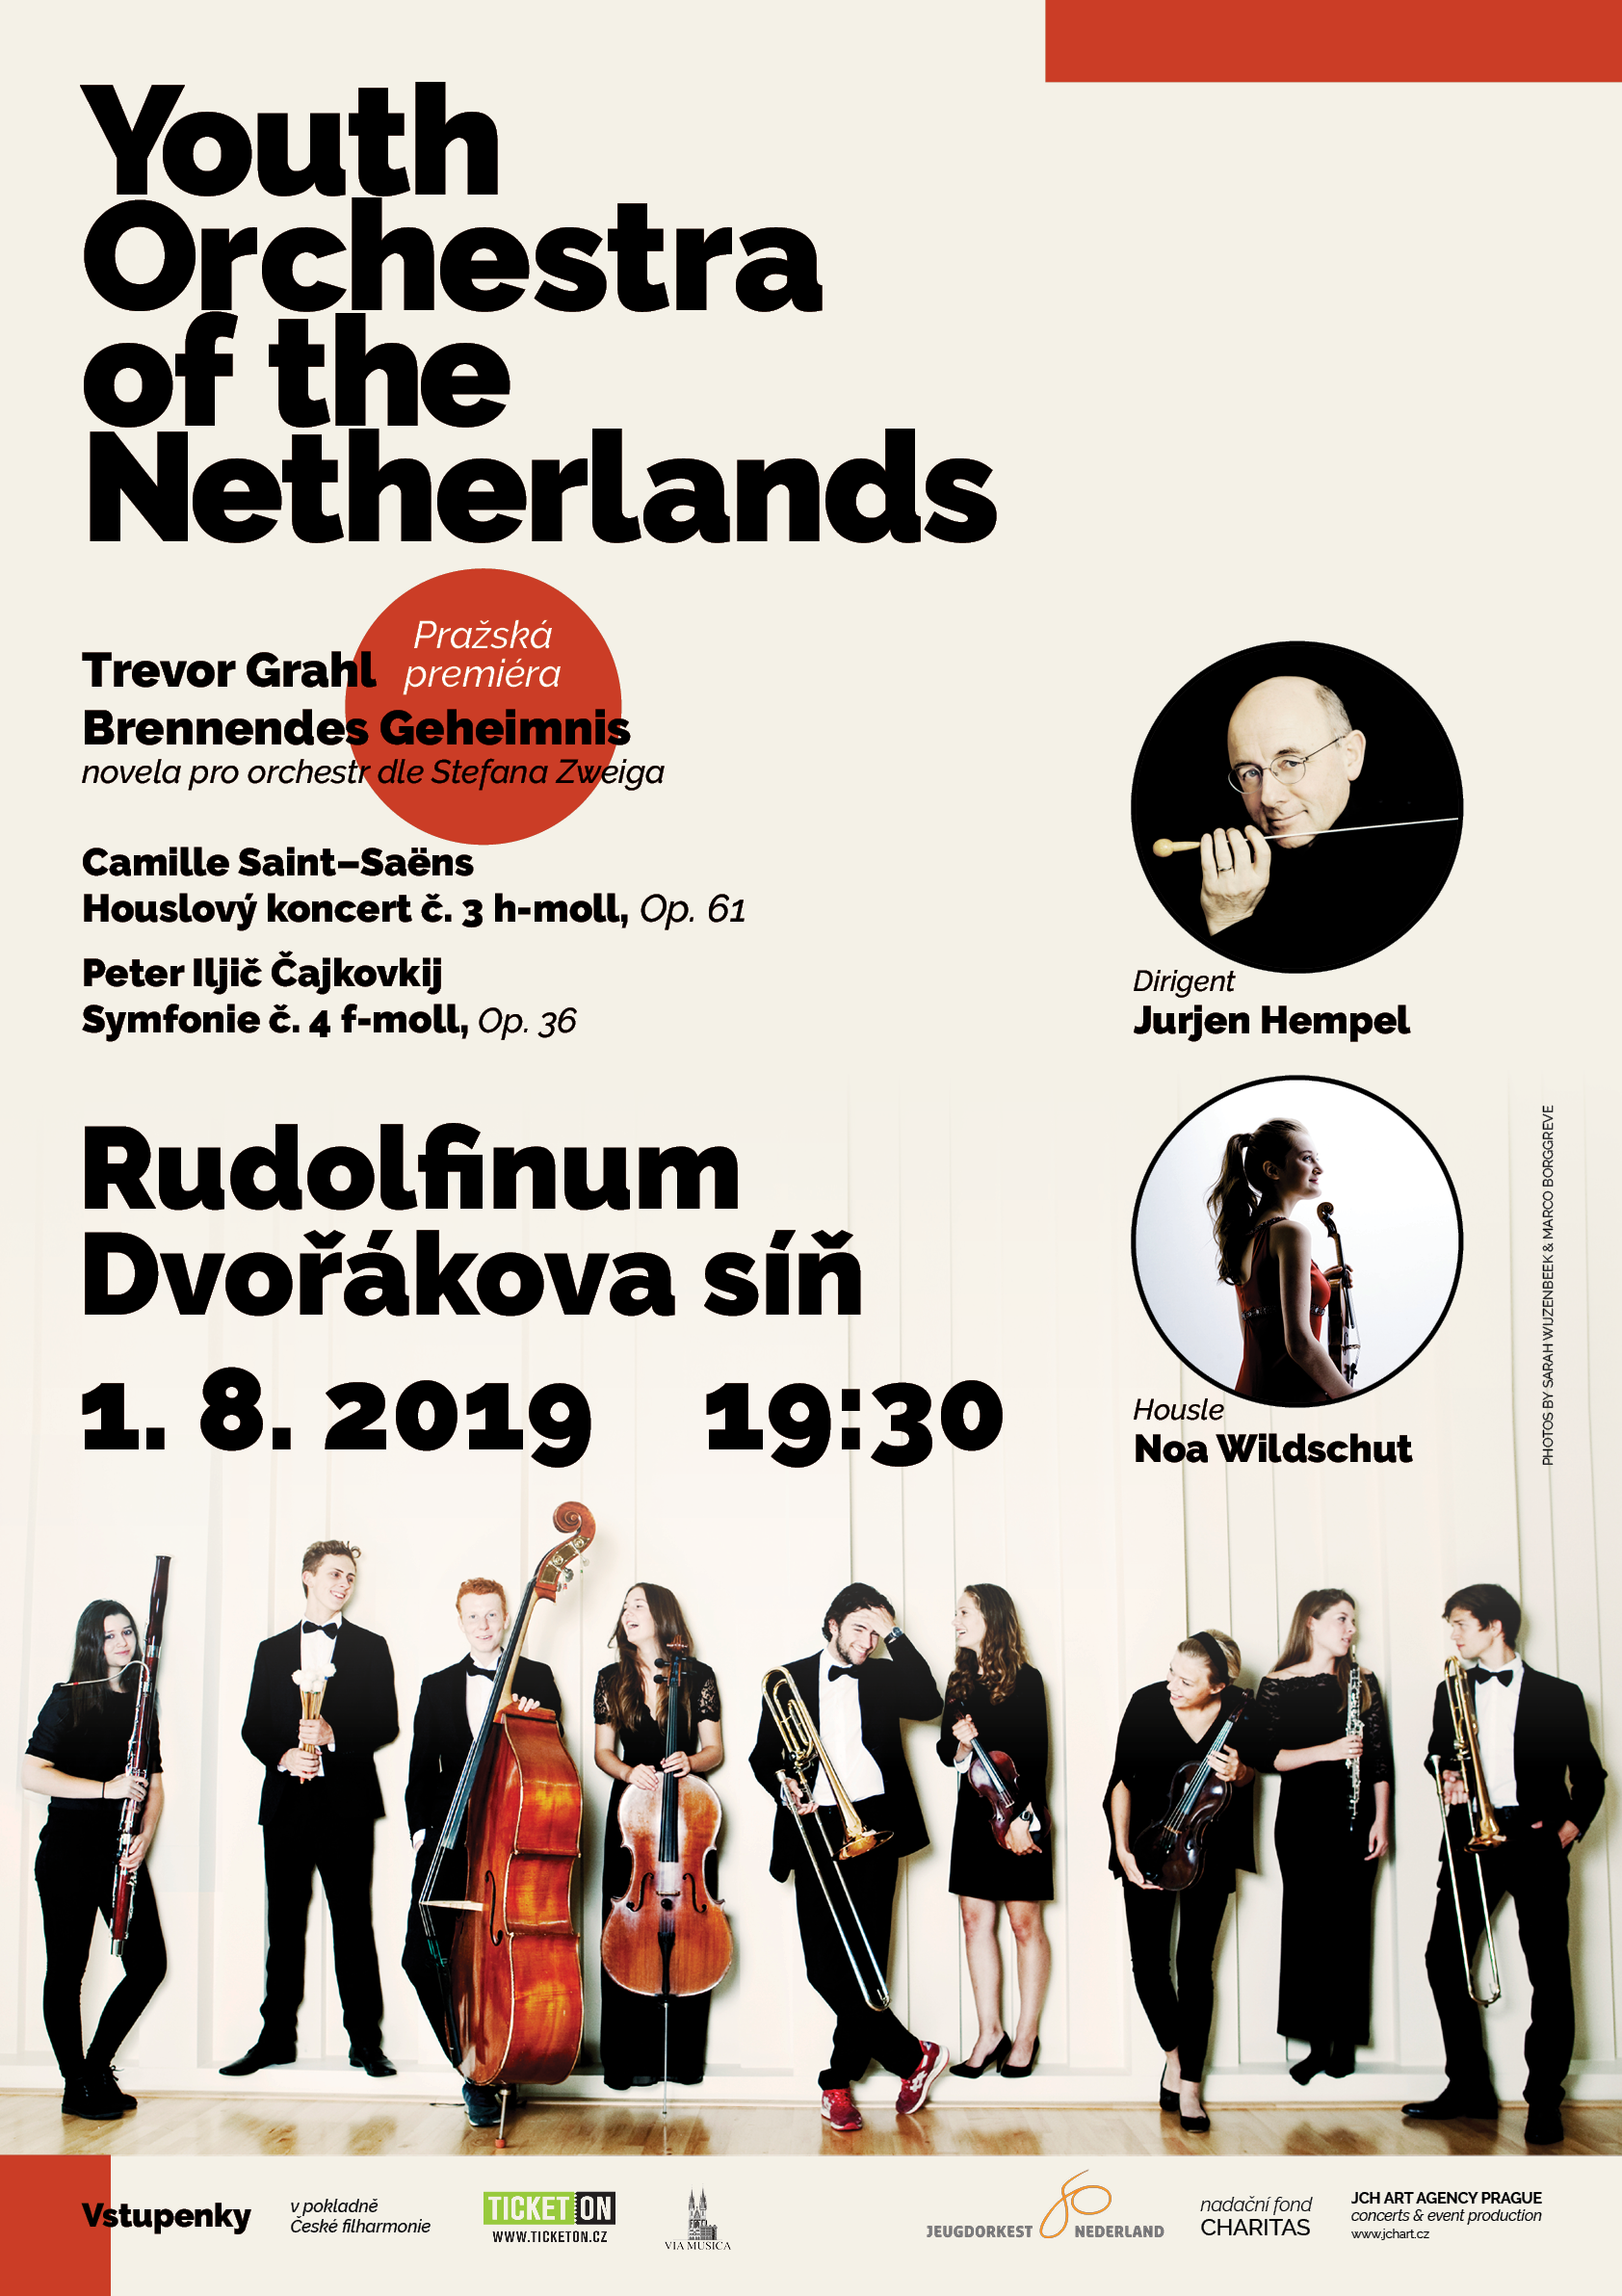 Youth Orchestra of the Netherlands